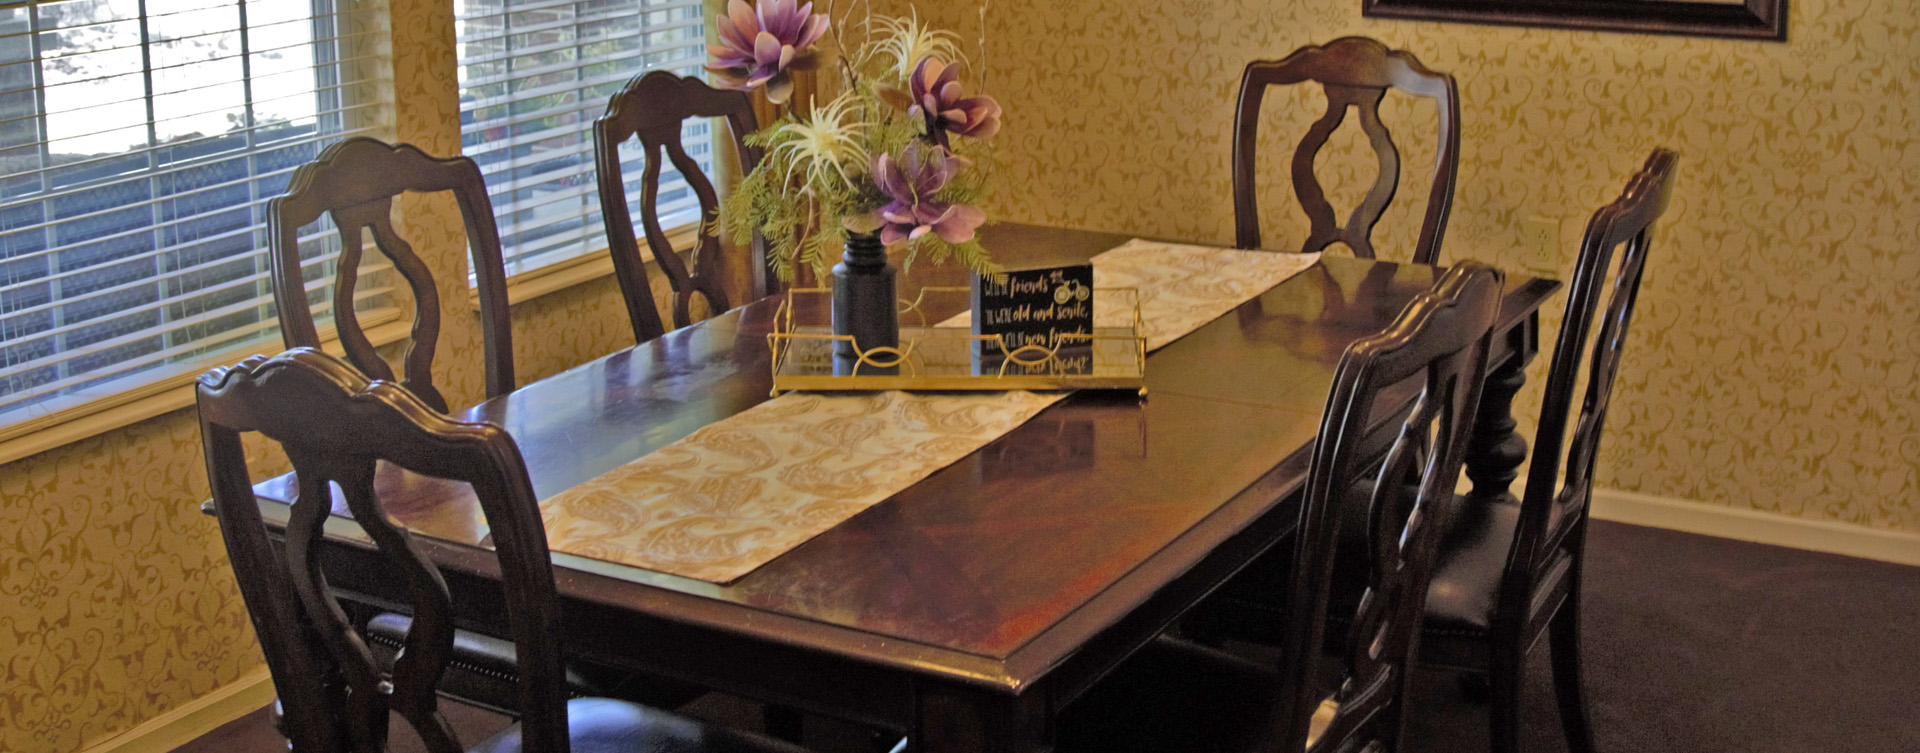 Celebrate special occasions in the private dining room at Bickford of Cedar Falls